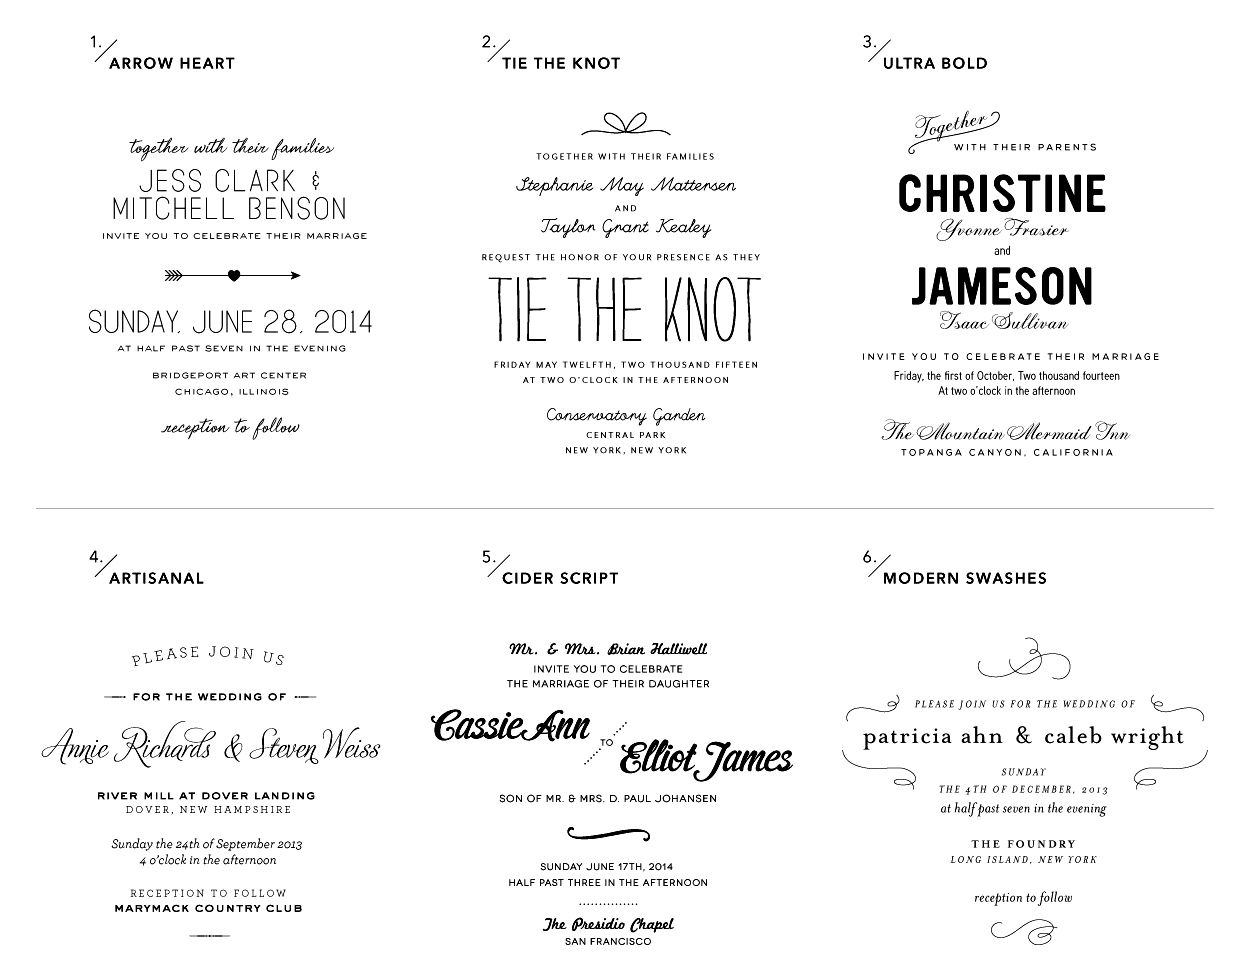 Whimsical Wedding Invitation Wording View all 6 type styles ...